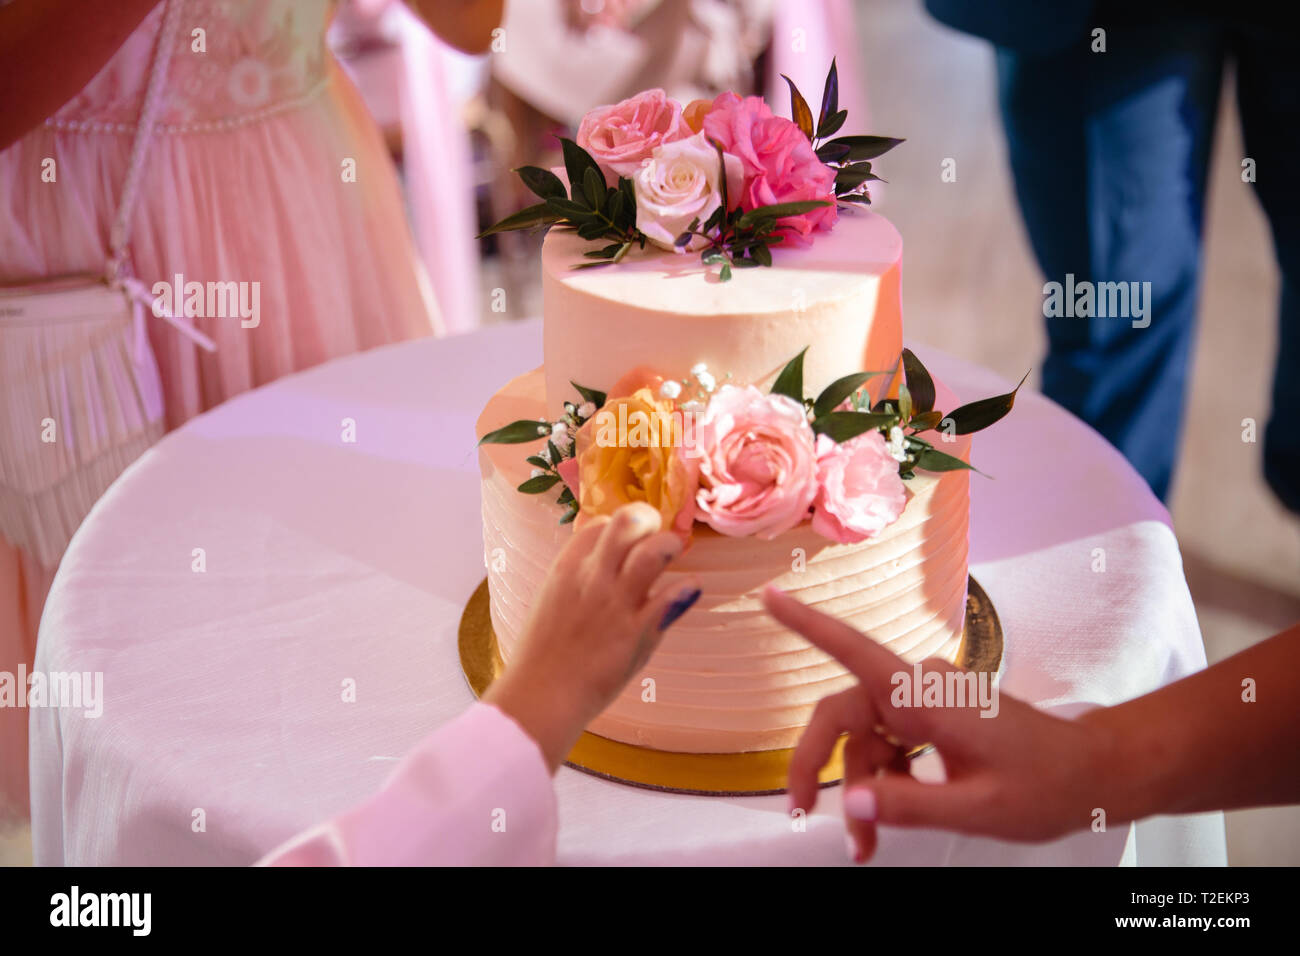 A child's hand leaning toward the wedding cake in ecological natural style - His parent shows with her finger that he shouldn't touch the cake in the  - Stock Image